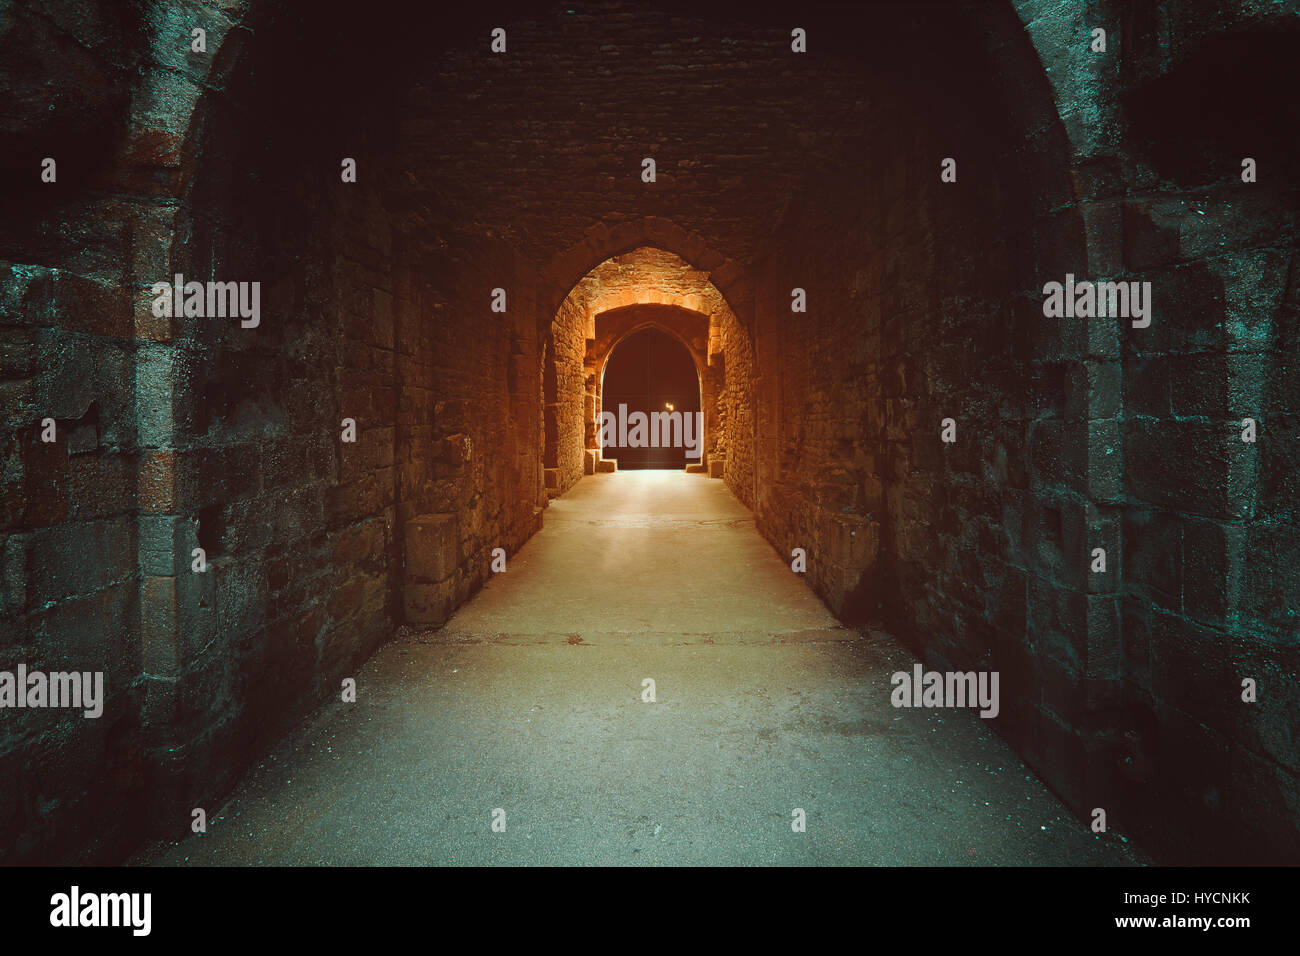 Mysterious magical gate to the underworld. Dark fantasy - Stock Image